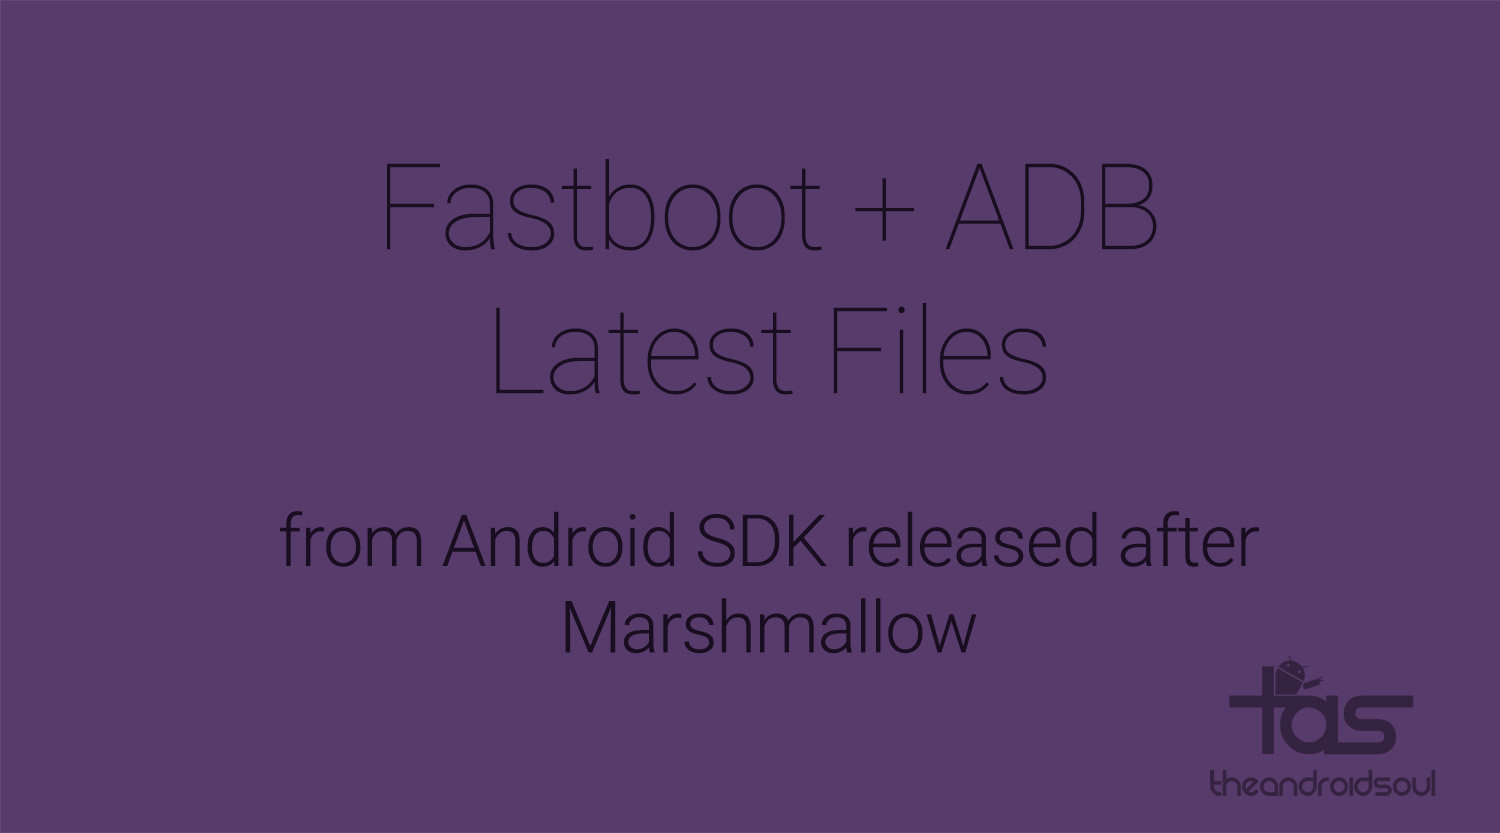 Download new ADB and Fastboot files from Android SDK released after